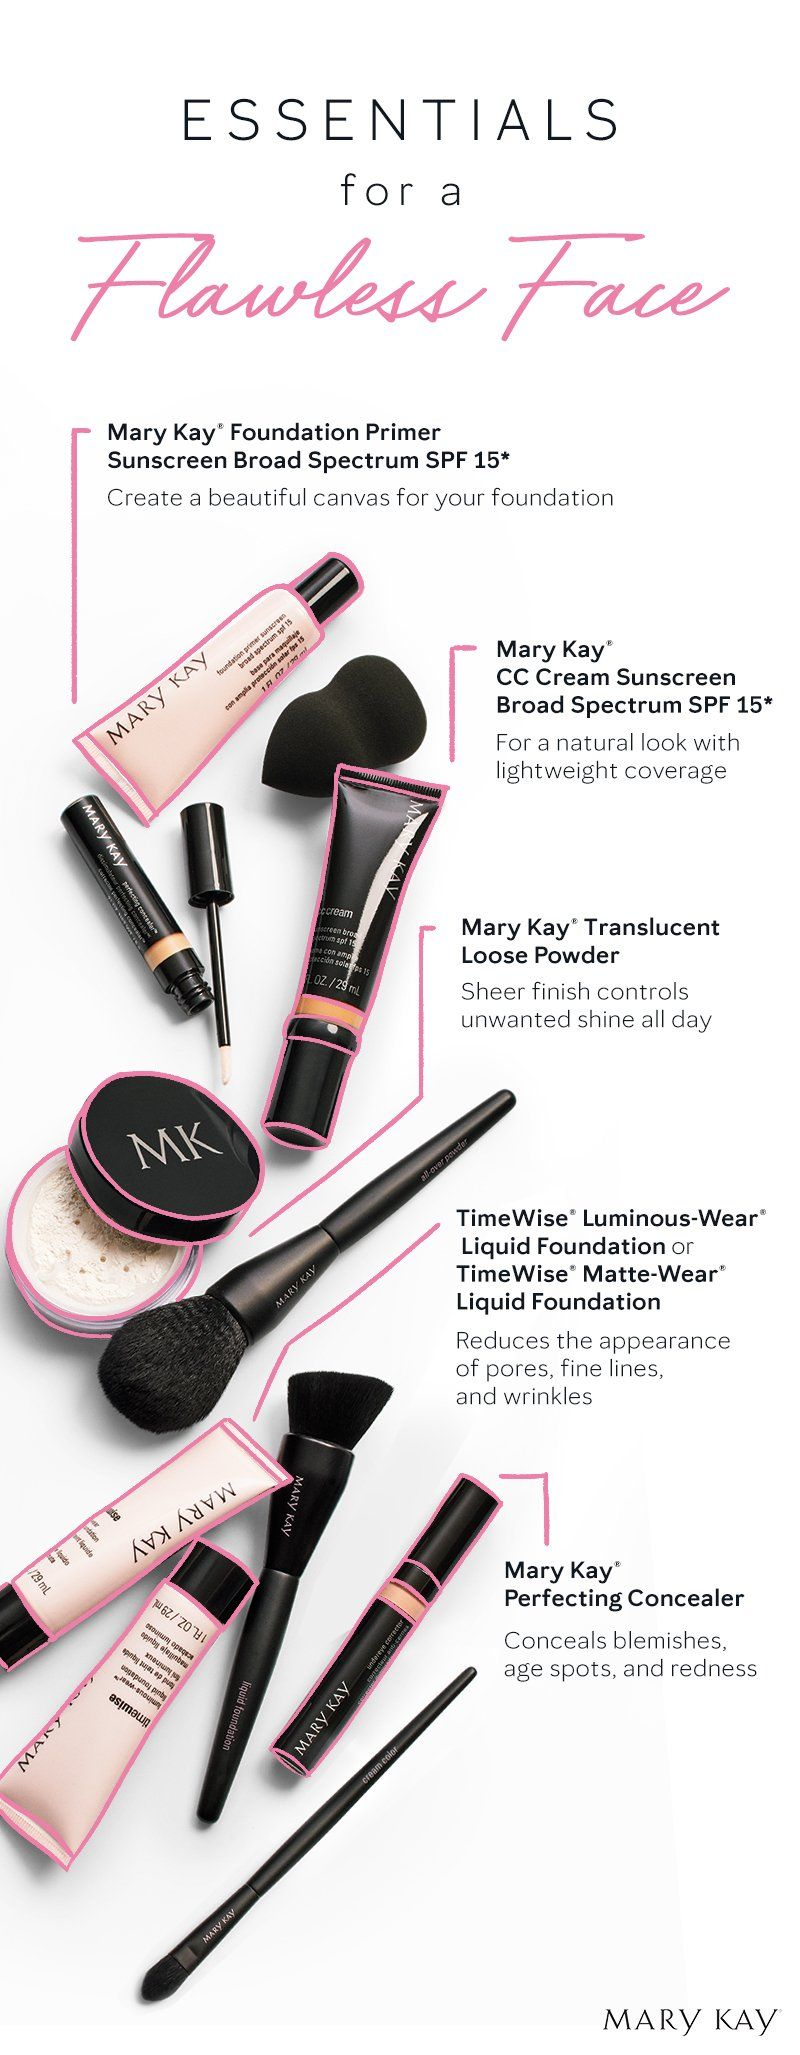 A flawless finish! From primer to powder, here are the makeup